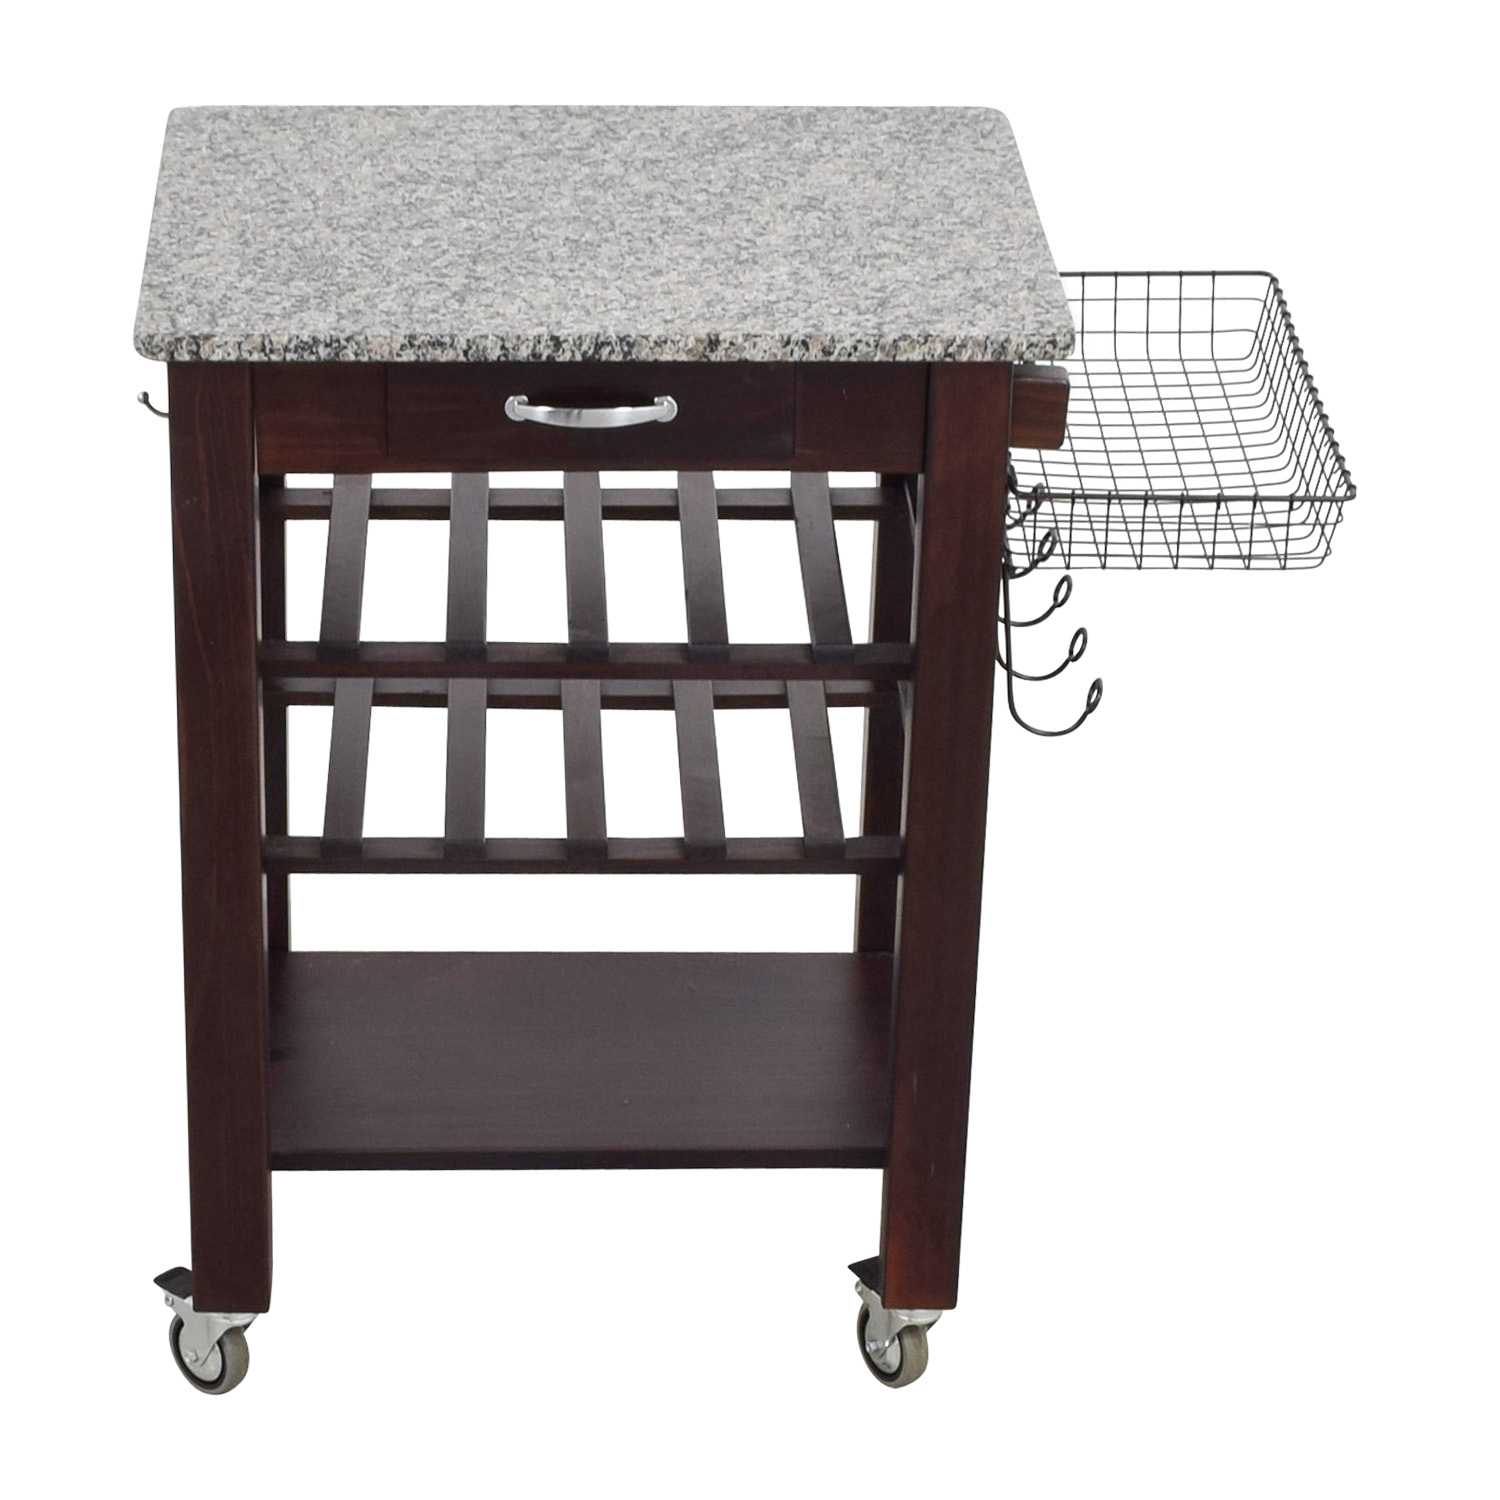 Home Goods Home Goods Marble Top and Wood Base Kitchen Cart dimensions